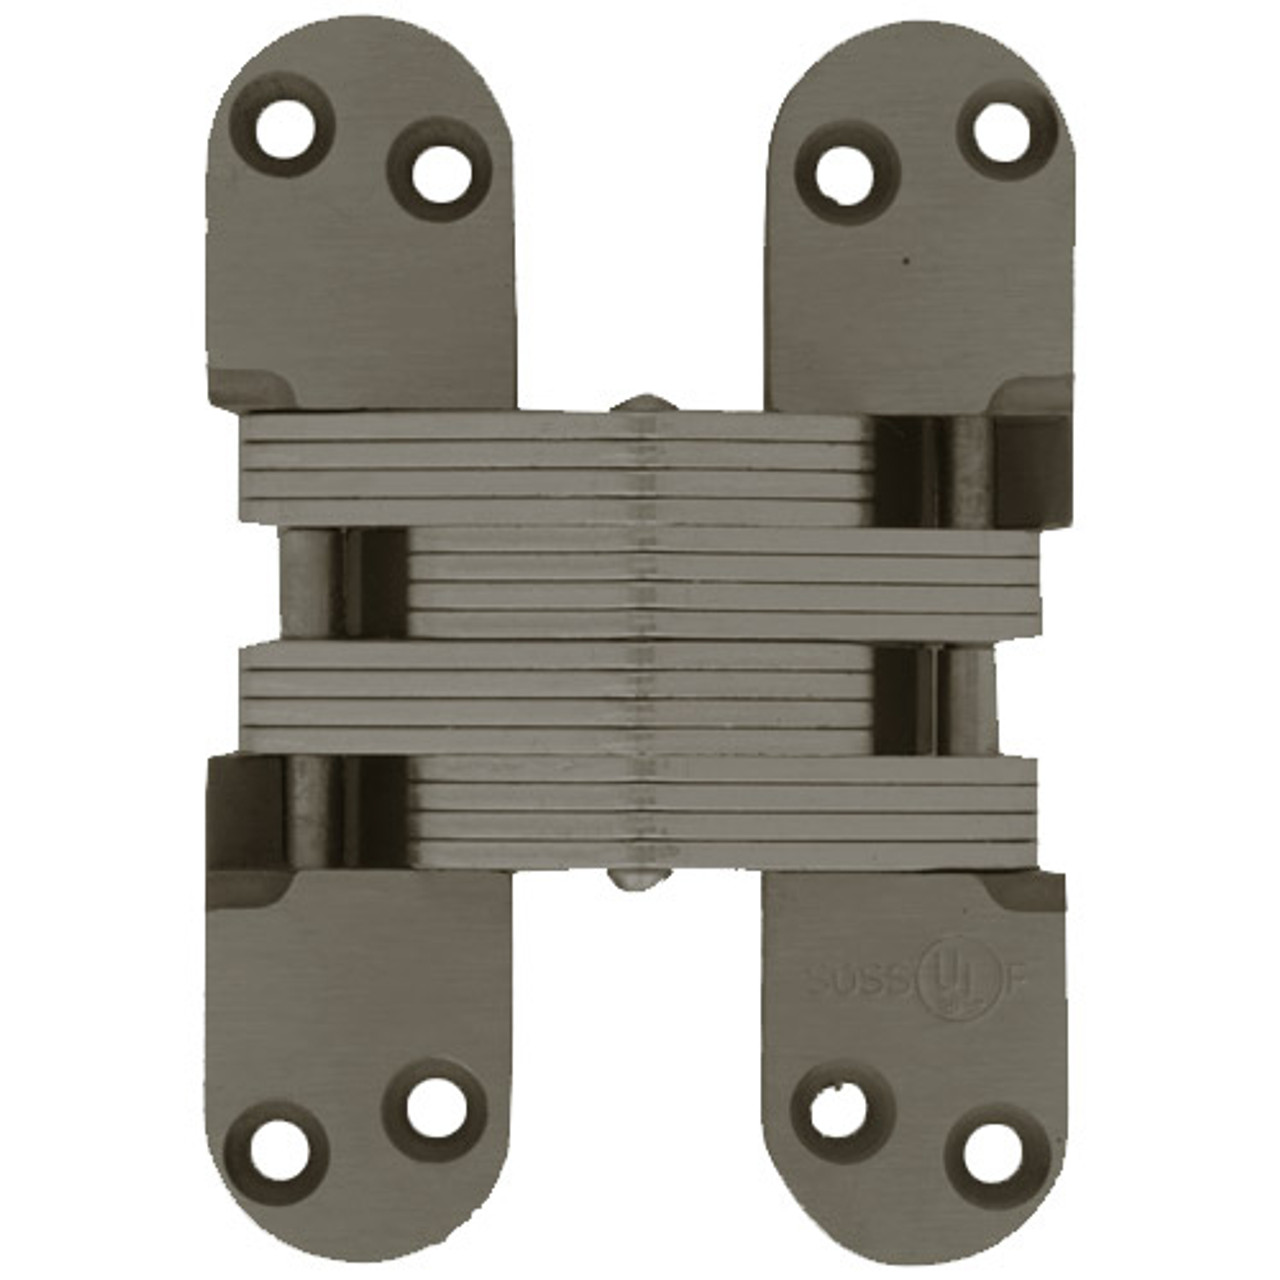 220SS-US32 Soss Invisible Hinge in Bright Stainless Steel Finish